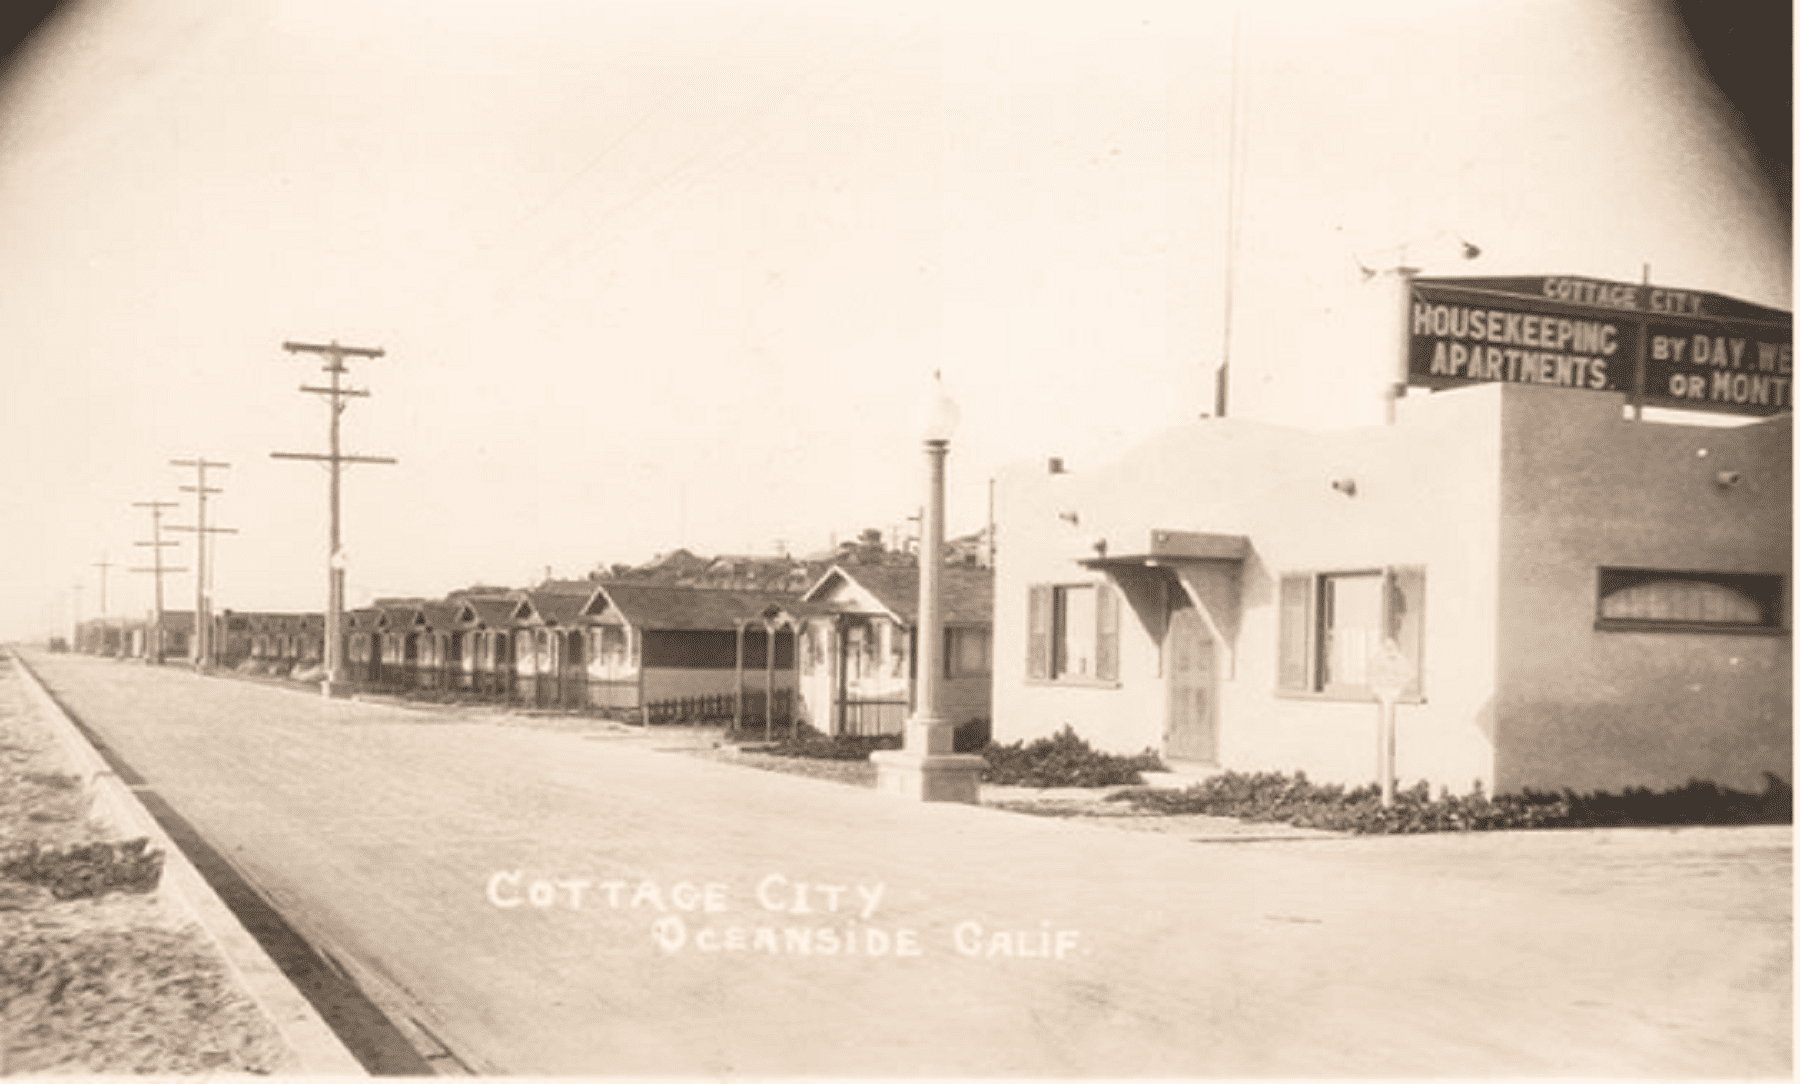 Robert's Cottages (1930s)